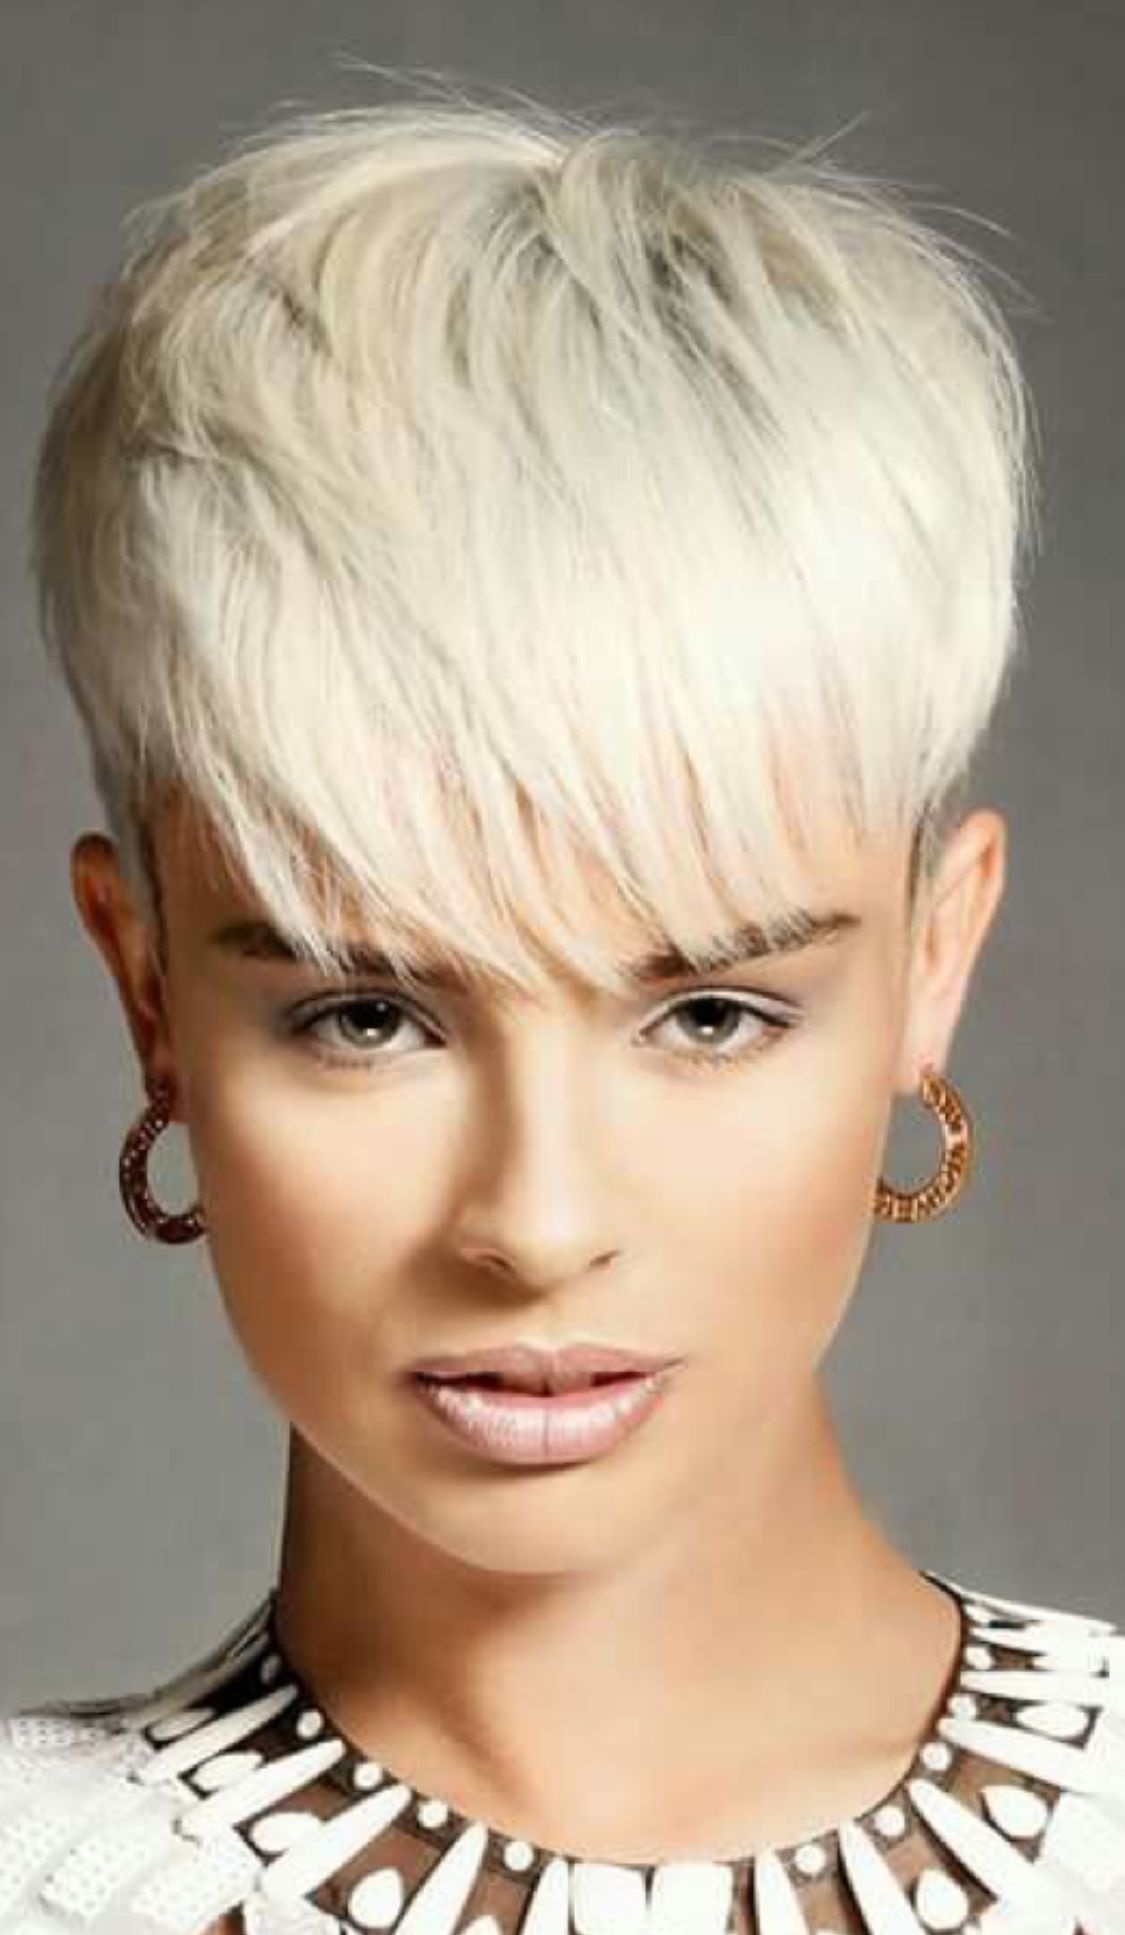 Pin by rebecca wheaton on cuts in pinterest short hair